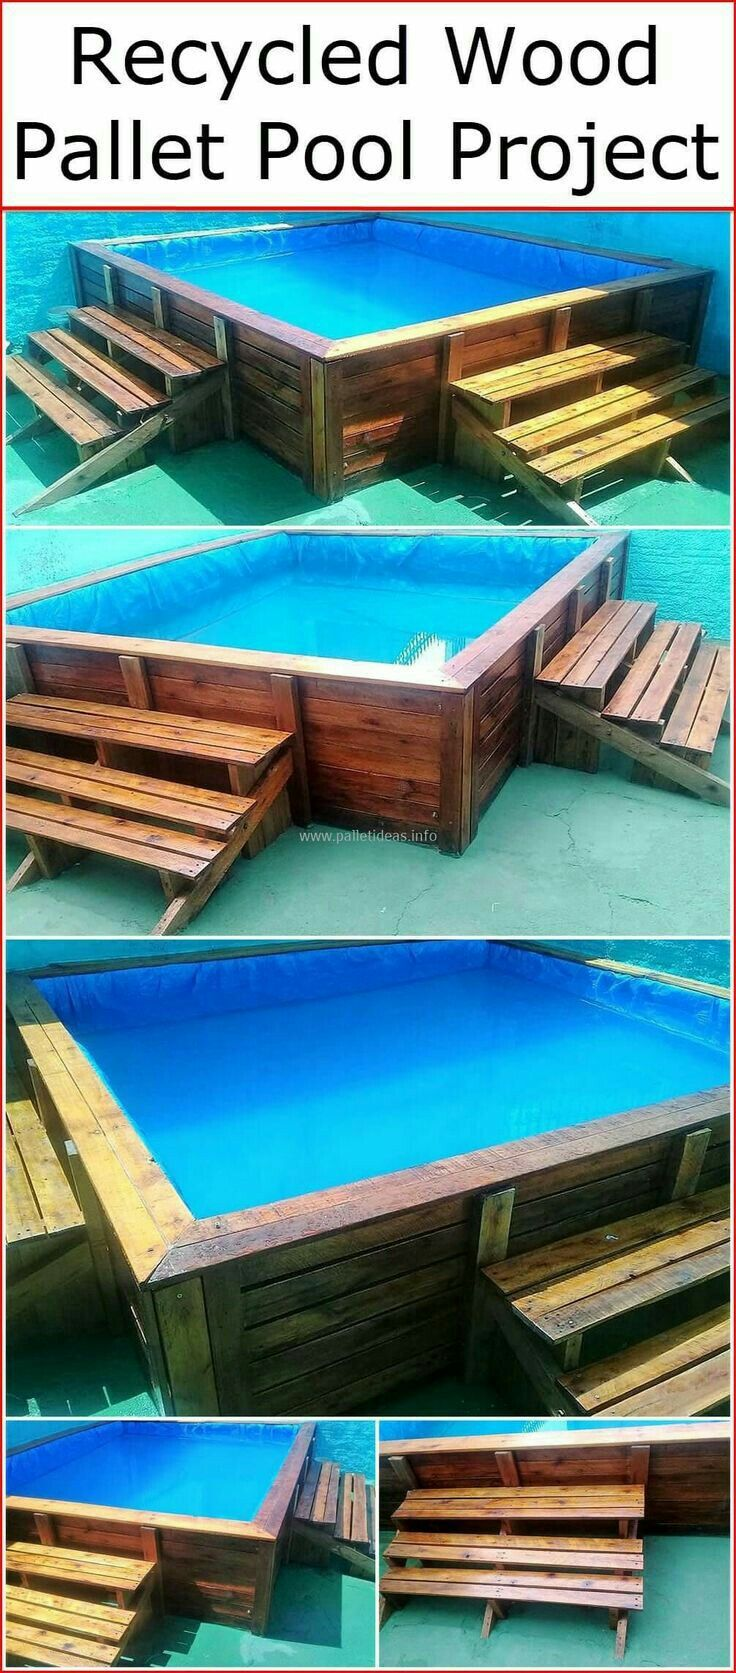 Pin By Fausto Arbelo On Pool And Pond Pallet Pool Pool Pallet Projects Garden